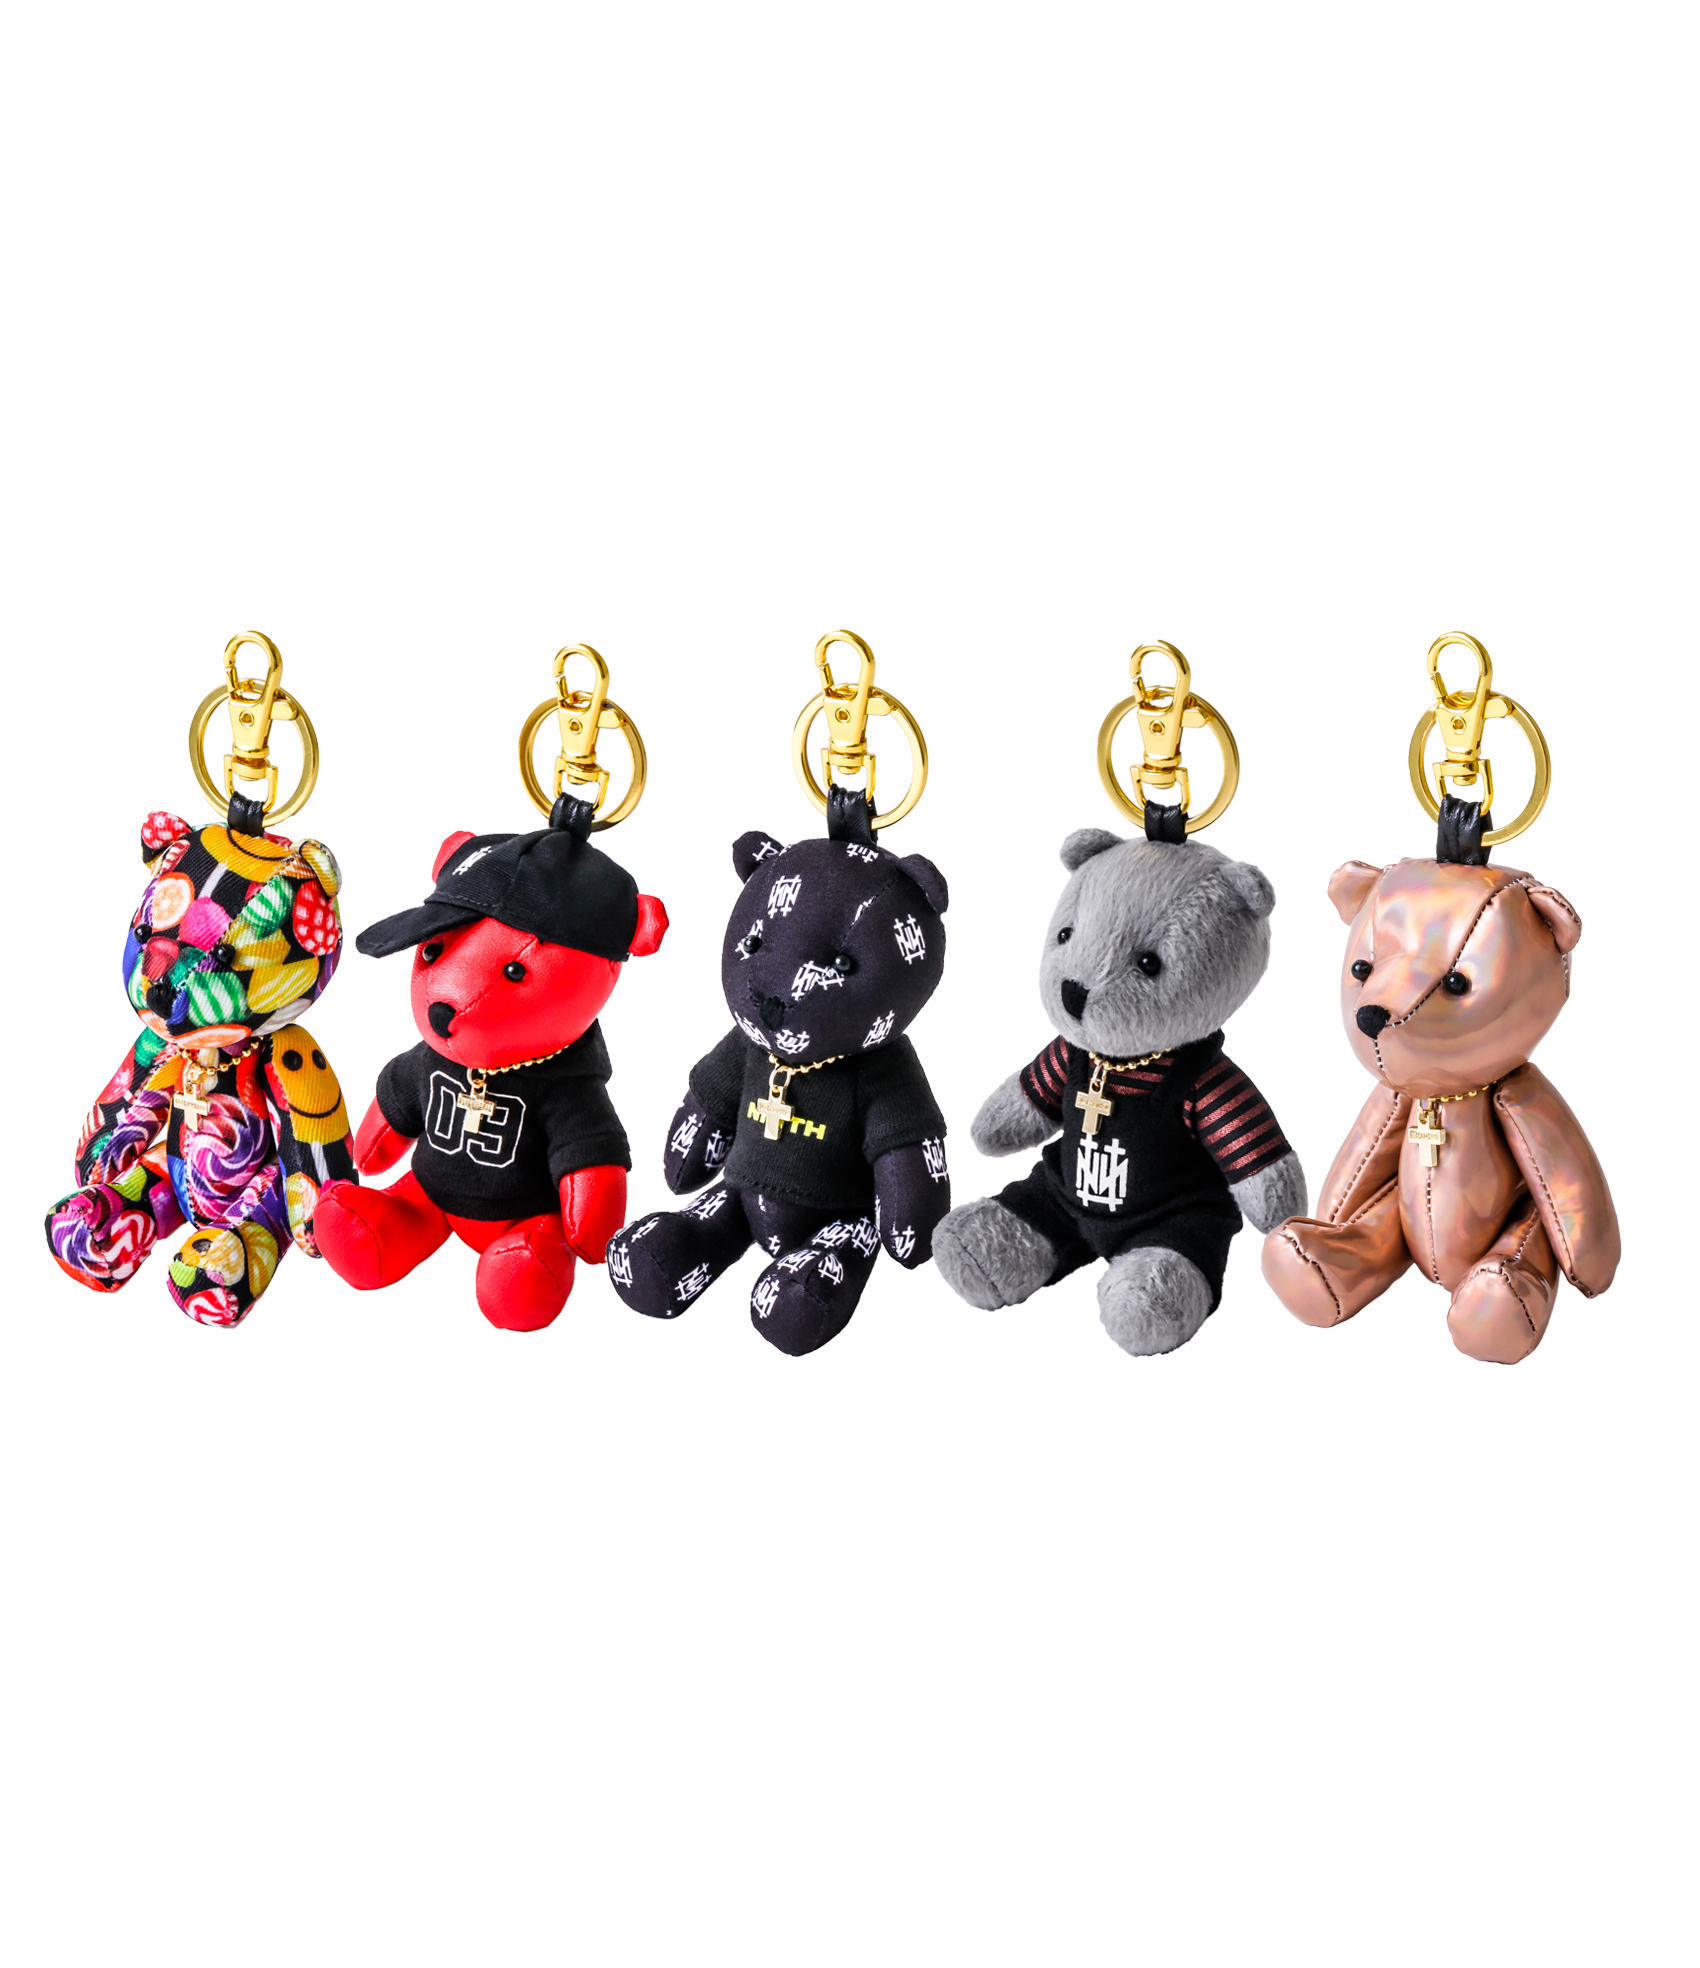 BEAR KEY RING (AOI PRODUCE)